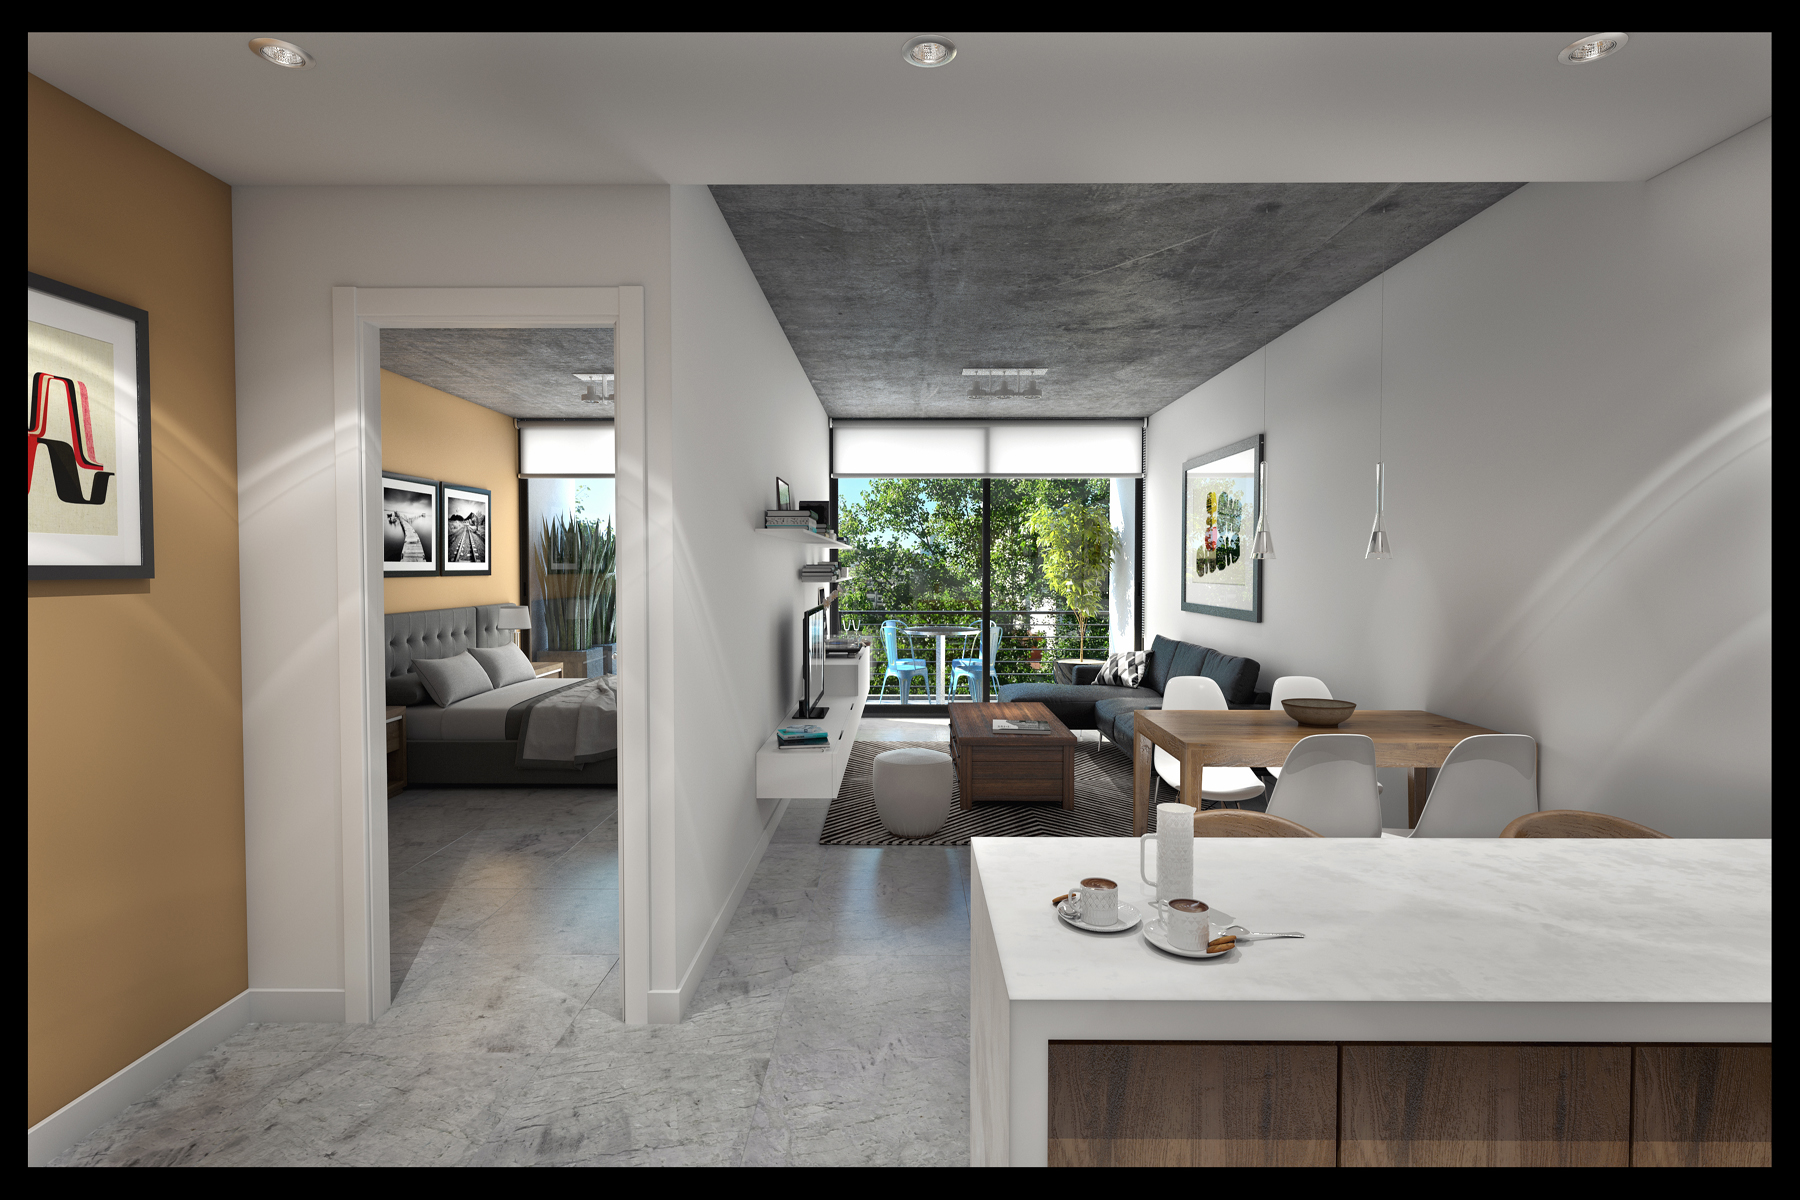 Apartments for Sale at WH Coghlan - 1 bedroom apartment Nuñez 3800 Buenos Aires, Buenos Aires C1429 Argentina